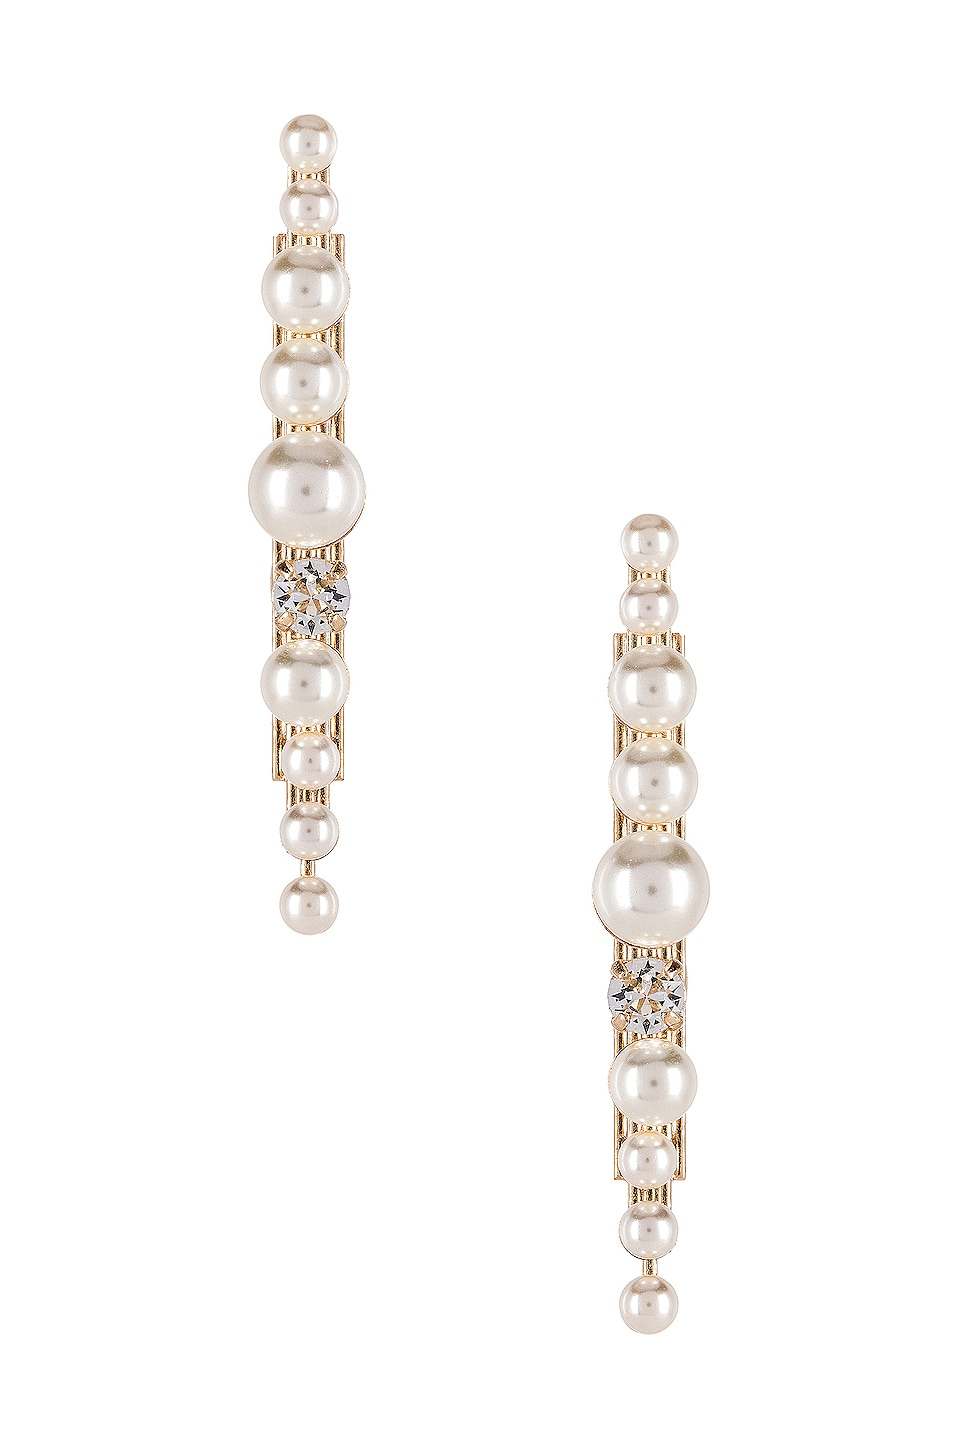 Anton Heunis Post Pearl Cluster Earring in Cream & Gold